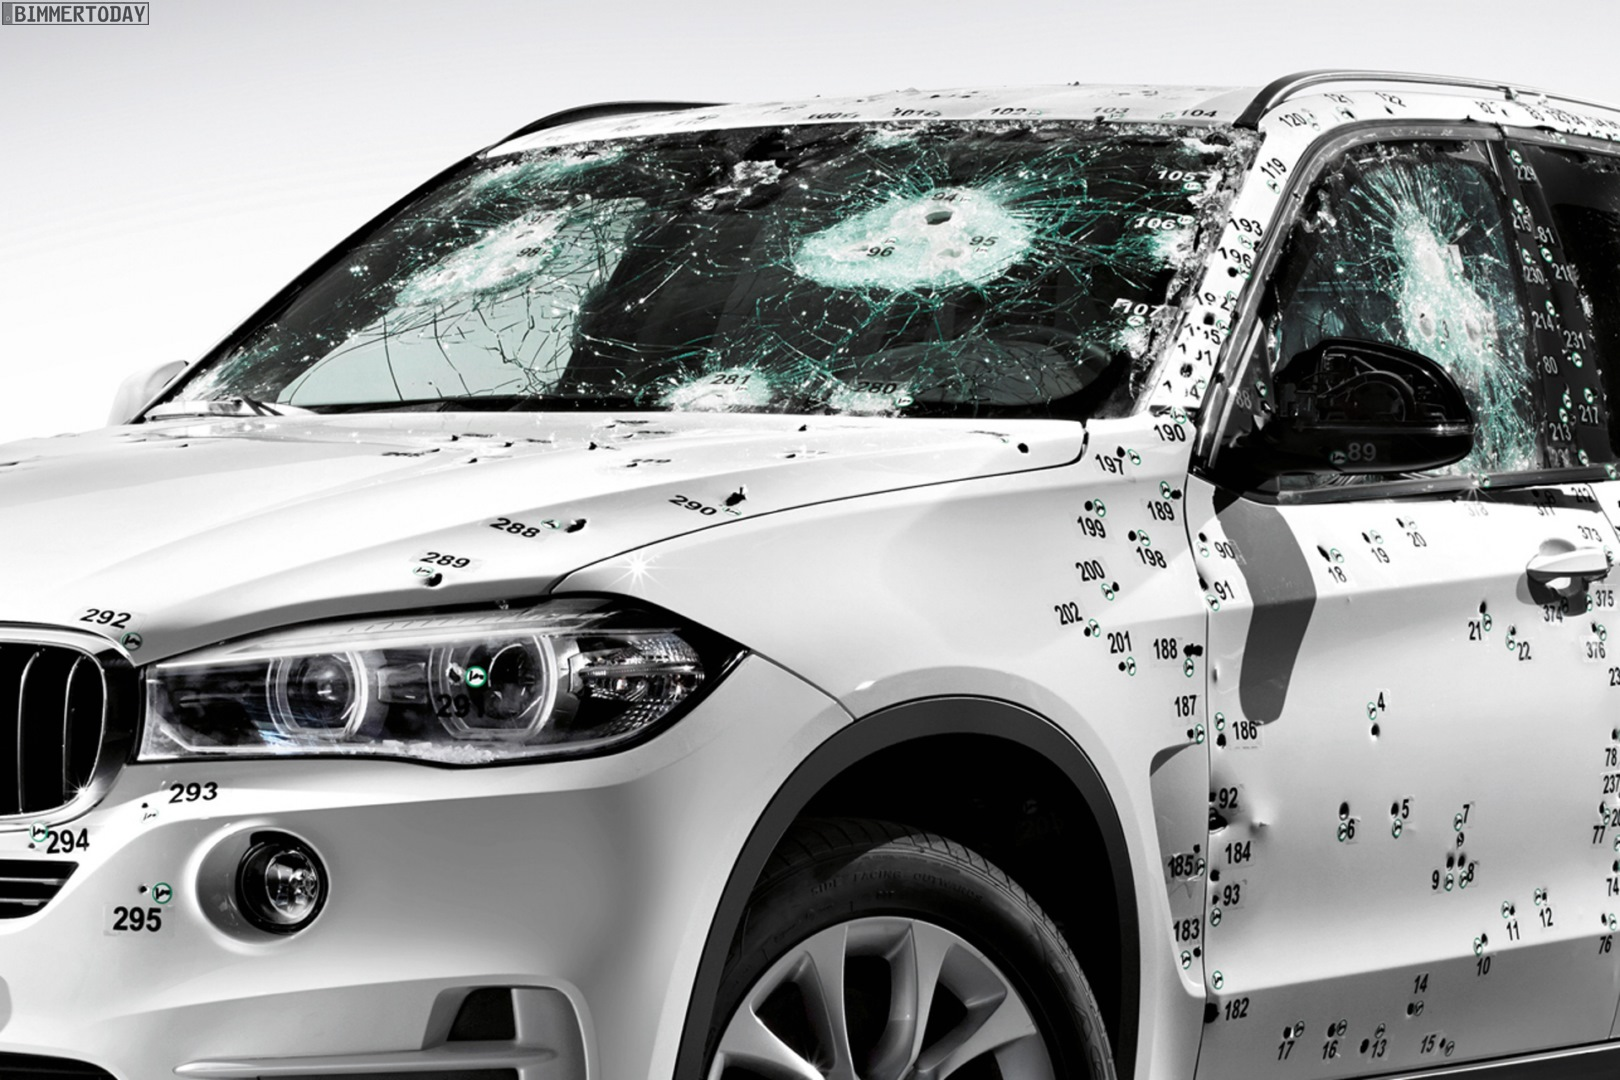 BMW X5 High Security F15 gepanzert Moskau 2014 Panzer SUV 11